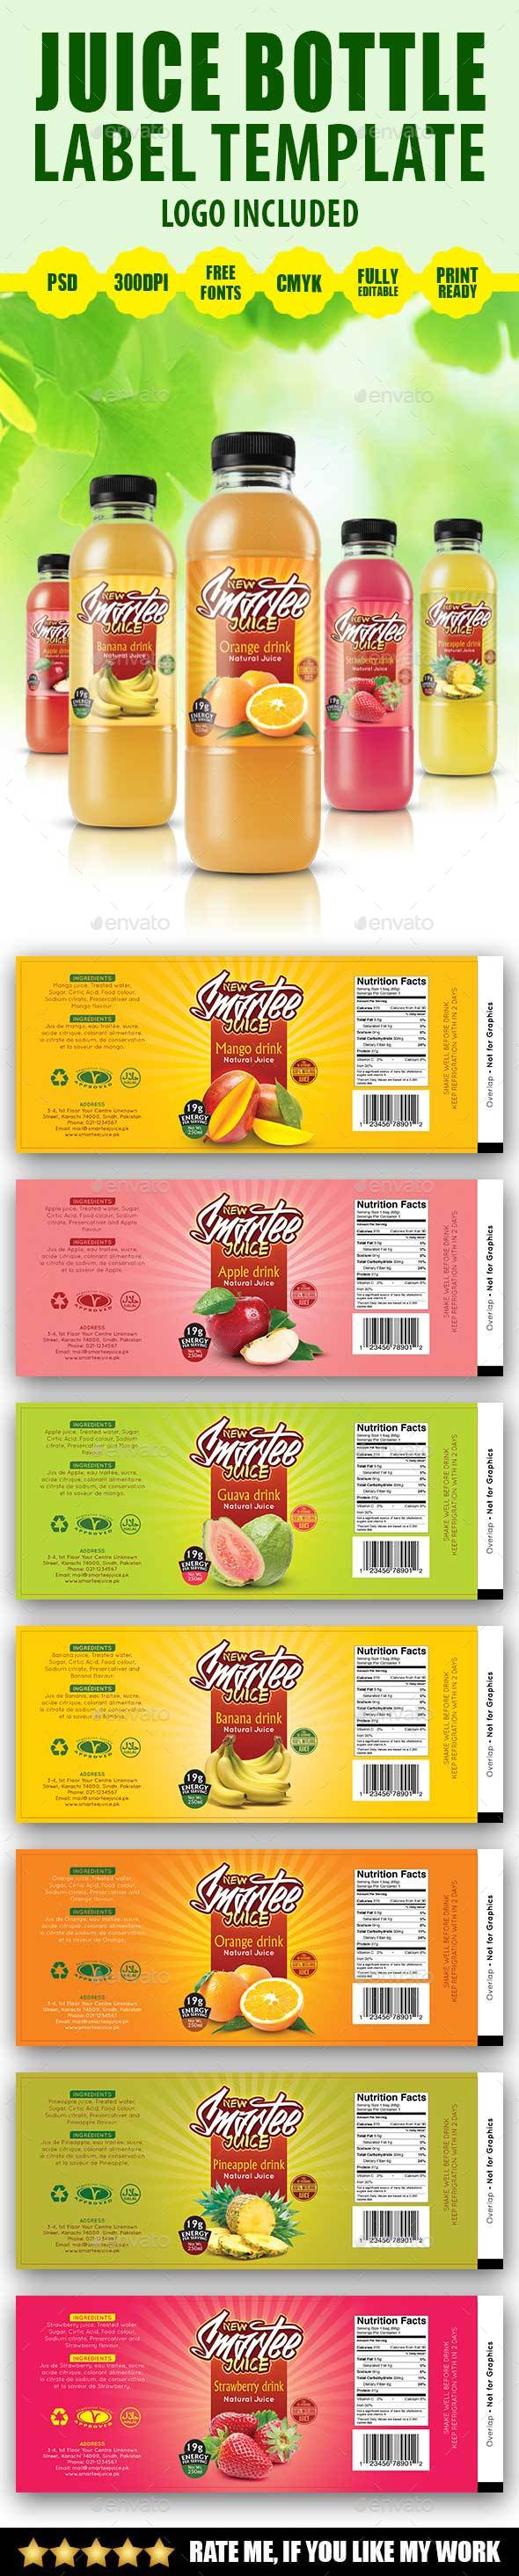 juice bottle label template v2 by artsignz graphicriver